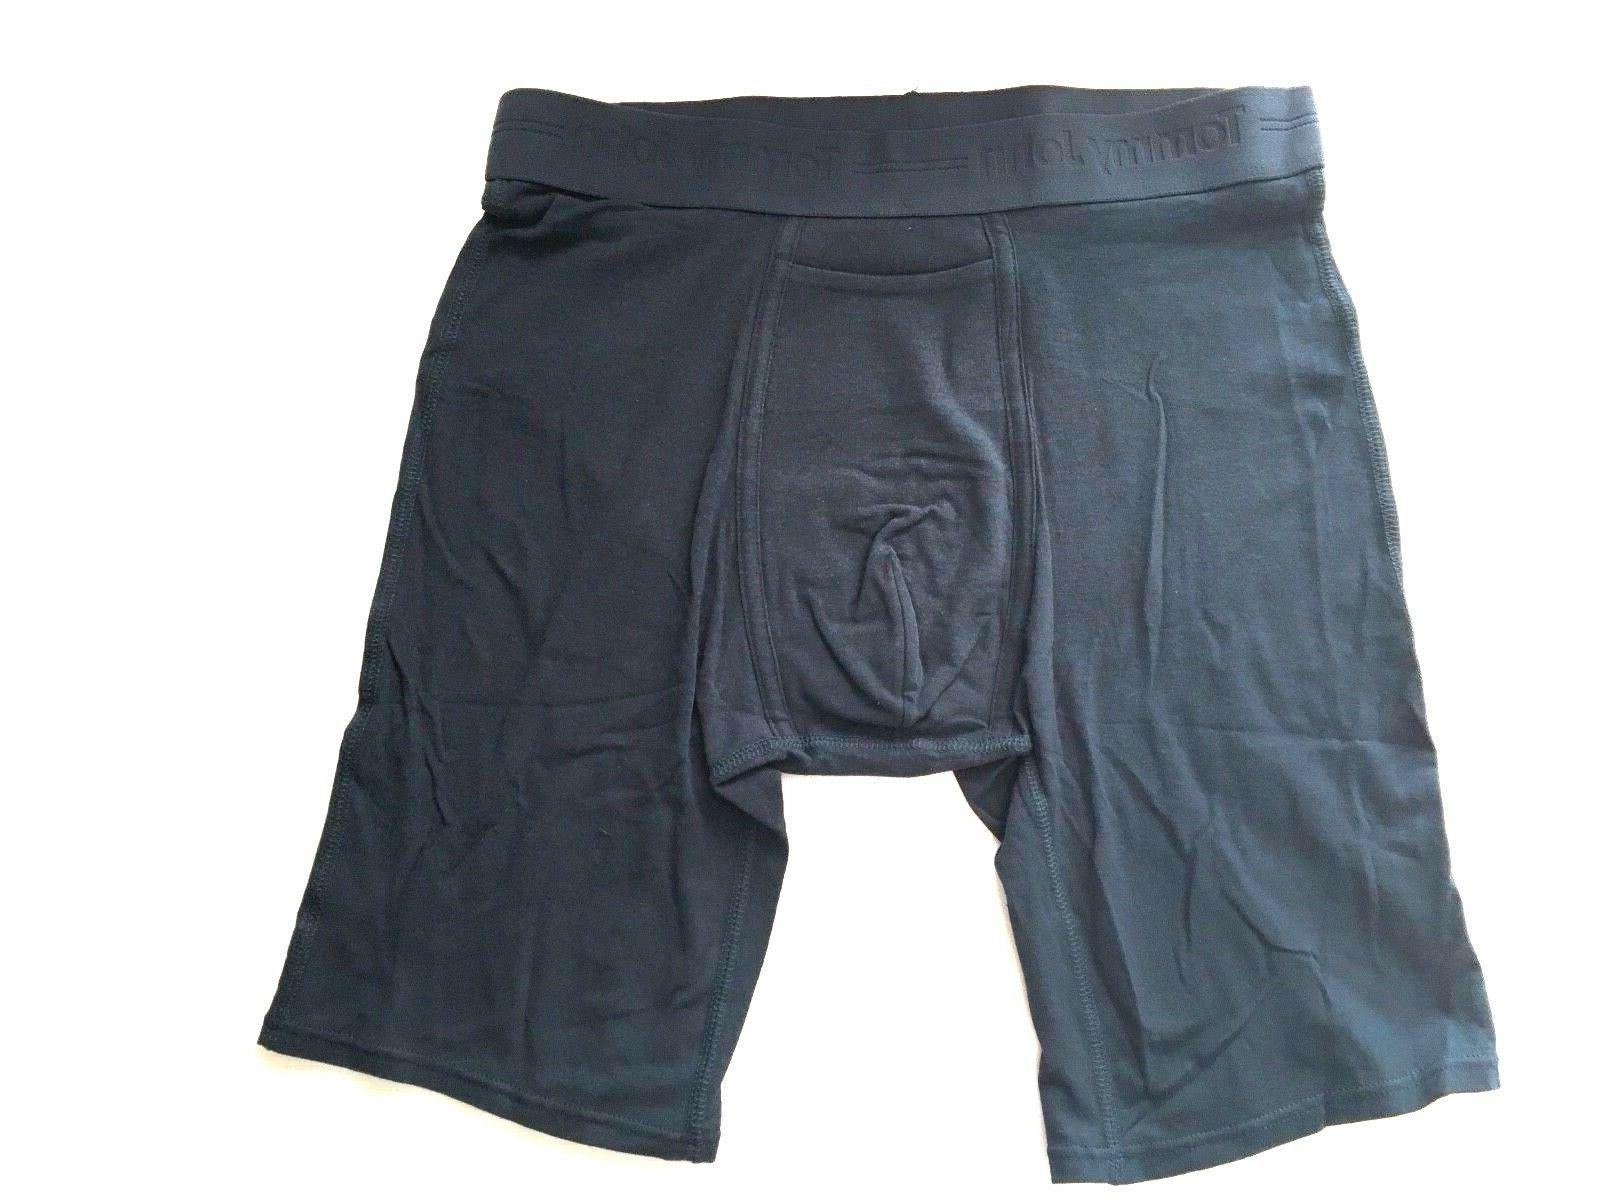 TOMMY JOHN 2-PACK MEDIUM Boxer NWT!